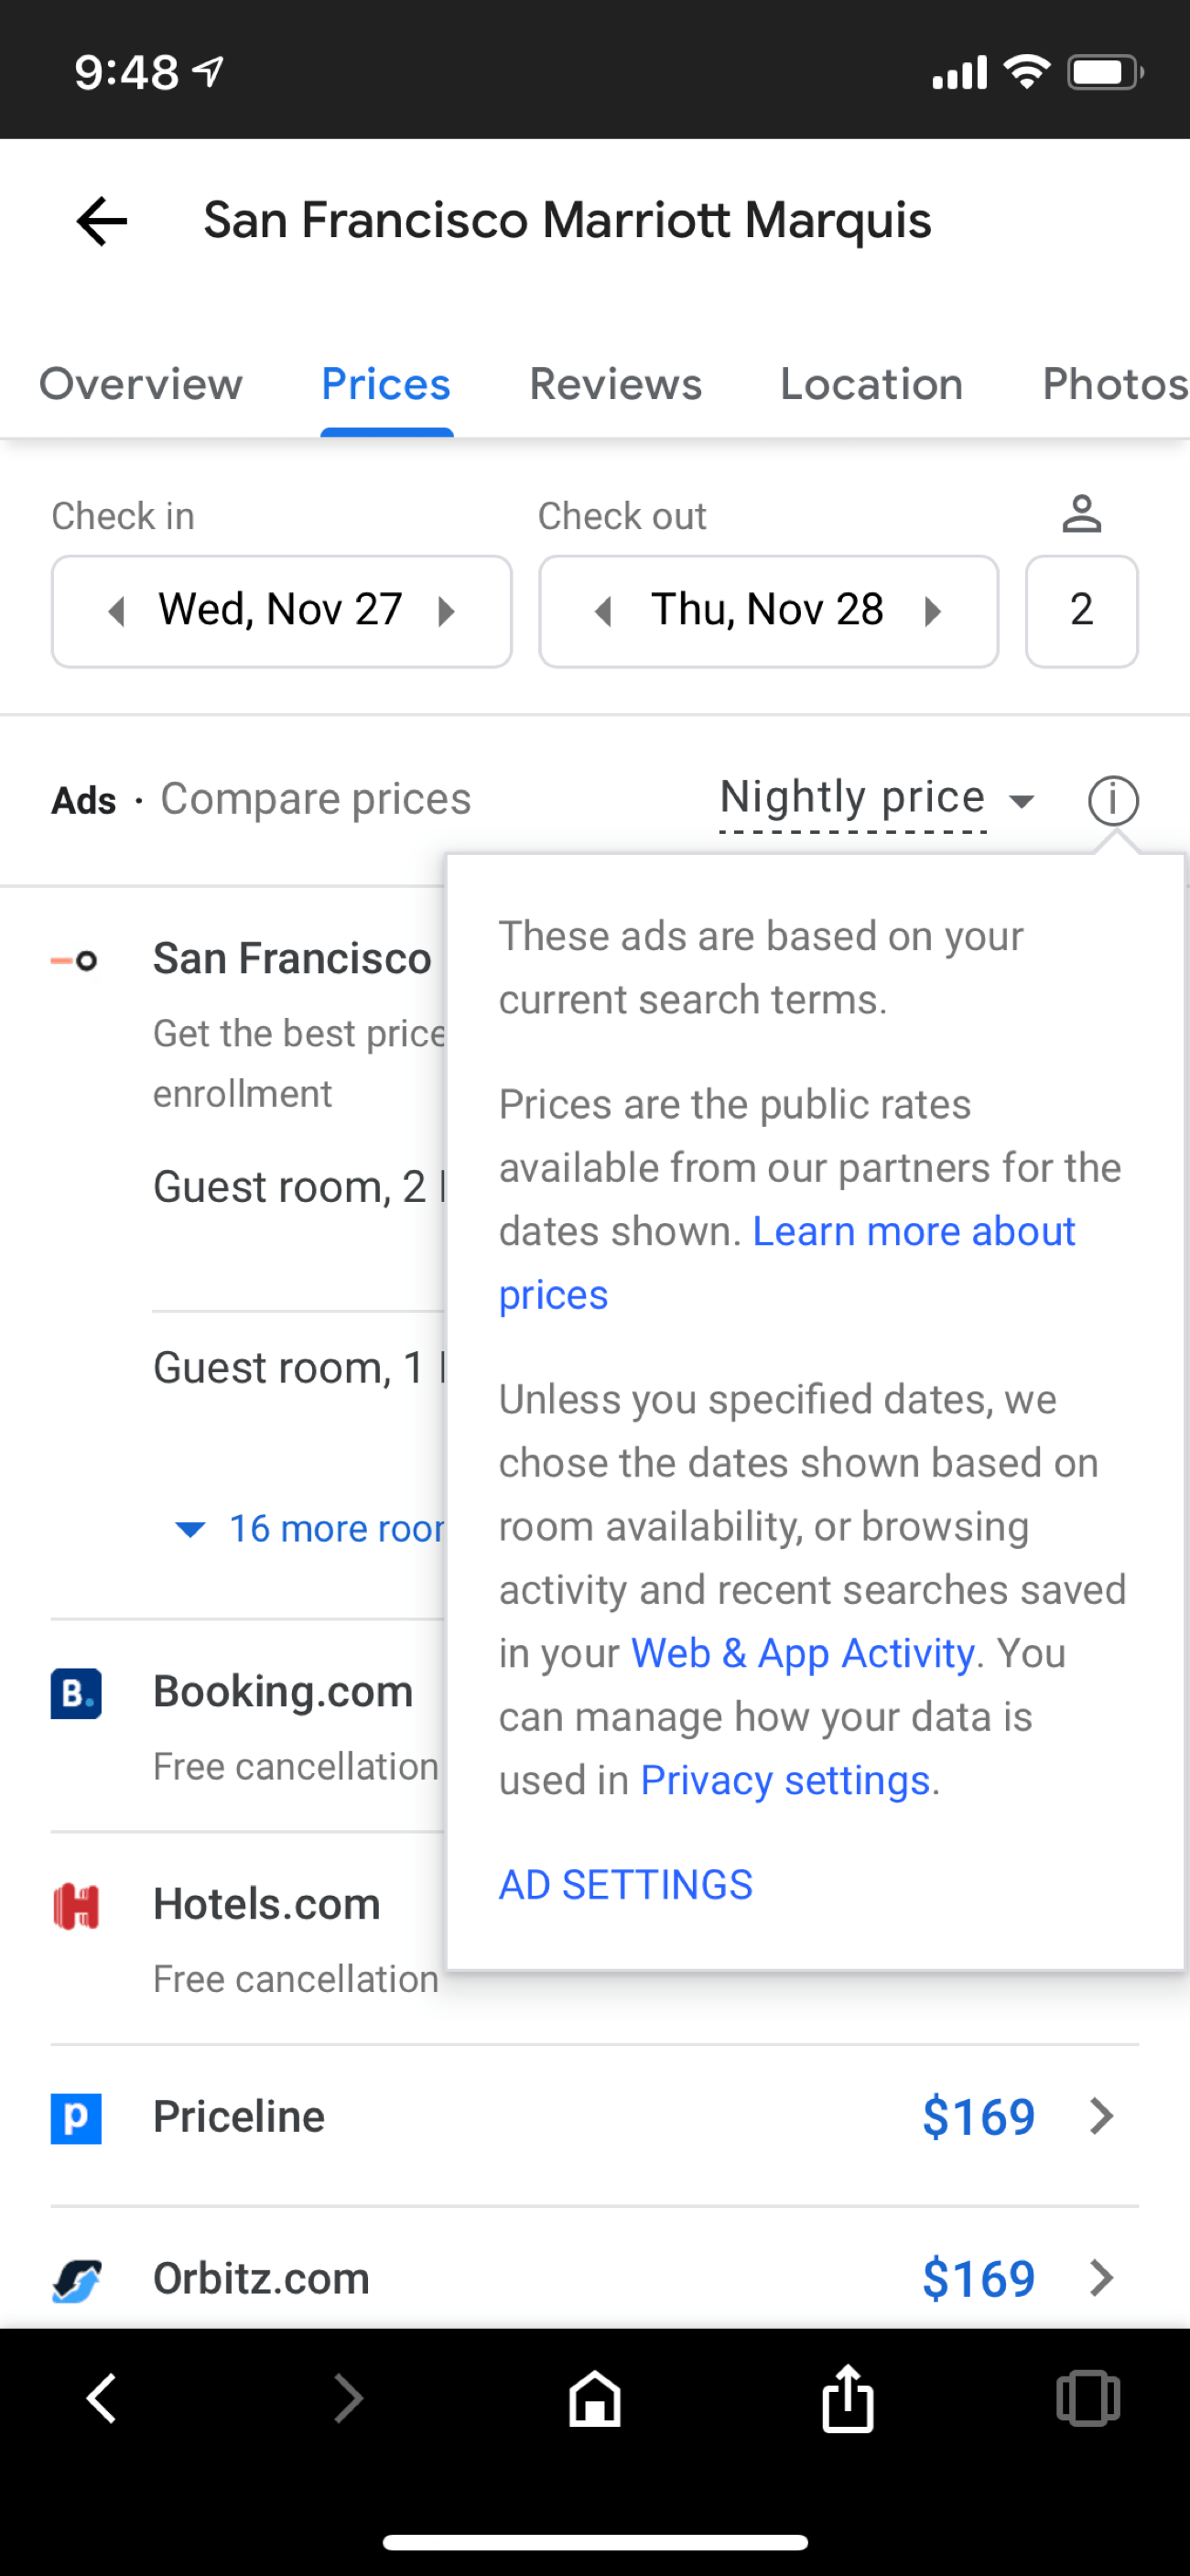 Google hotel module listings are ads